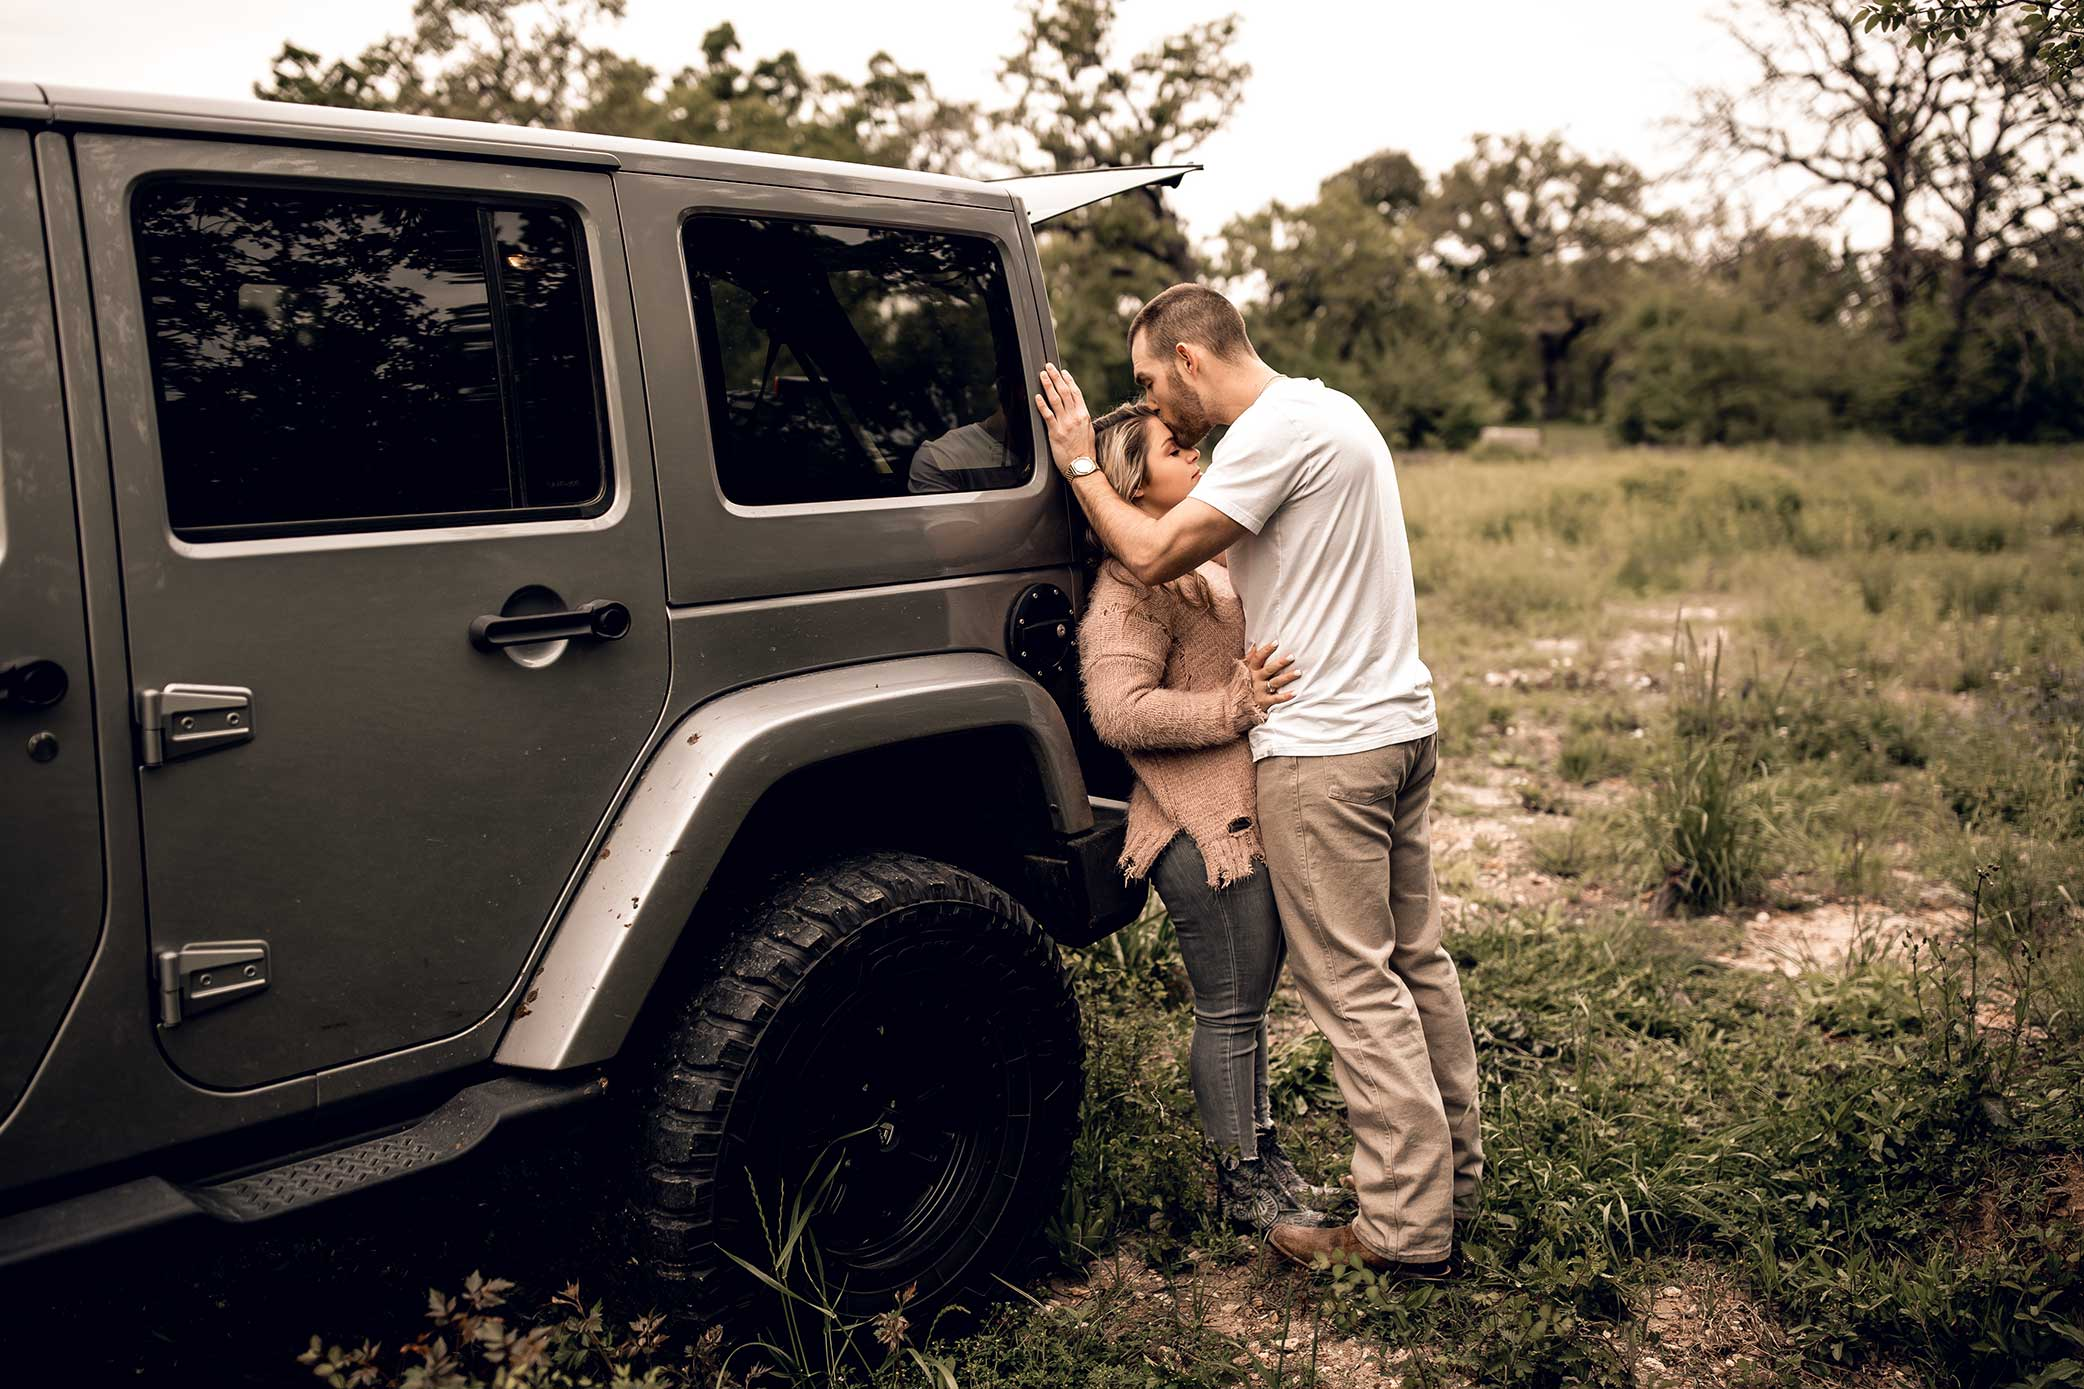 shelby-schiller-photography-lifestyle-couples-remi-colt-outdoor-jeep-adventure-36.jpg